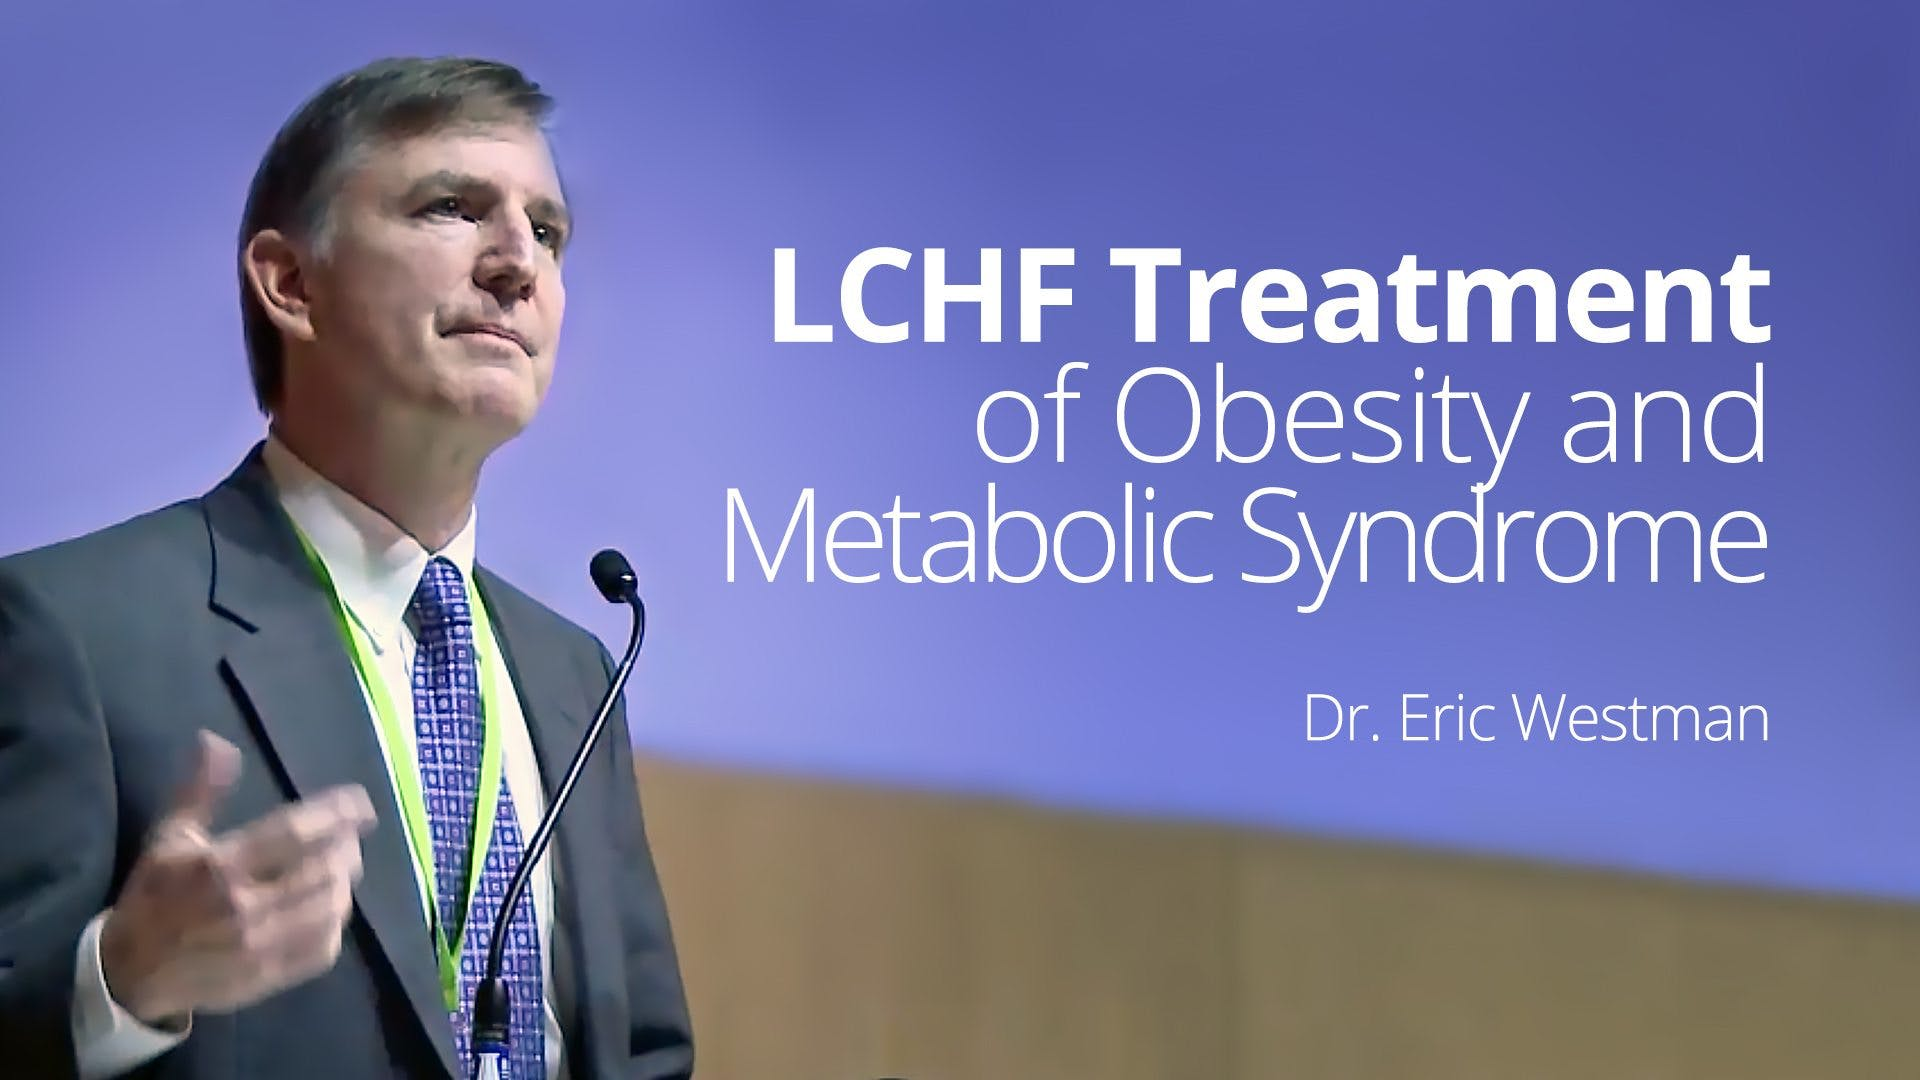 LCHF Treatment of Obesity and Metabolic Syndrome – Eric Westman